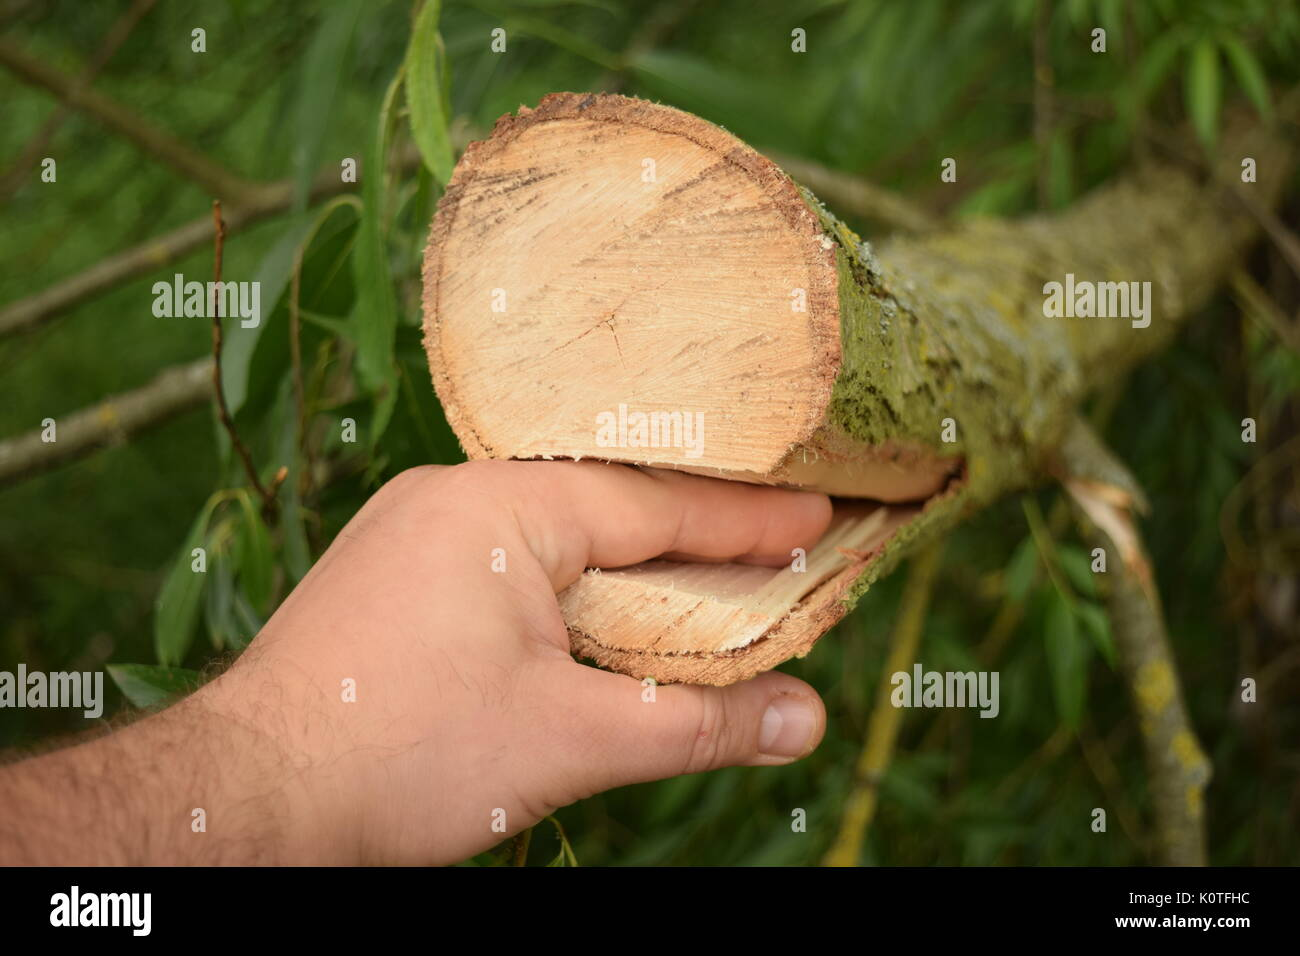 Caucasian male hand wedged in a thick branch - Stock Image